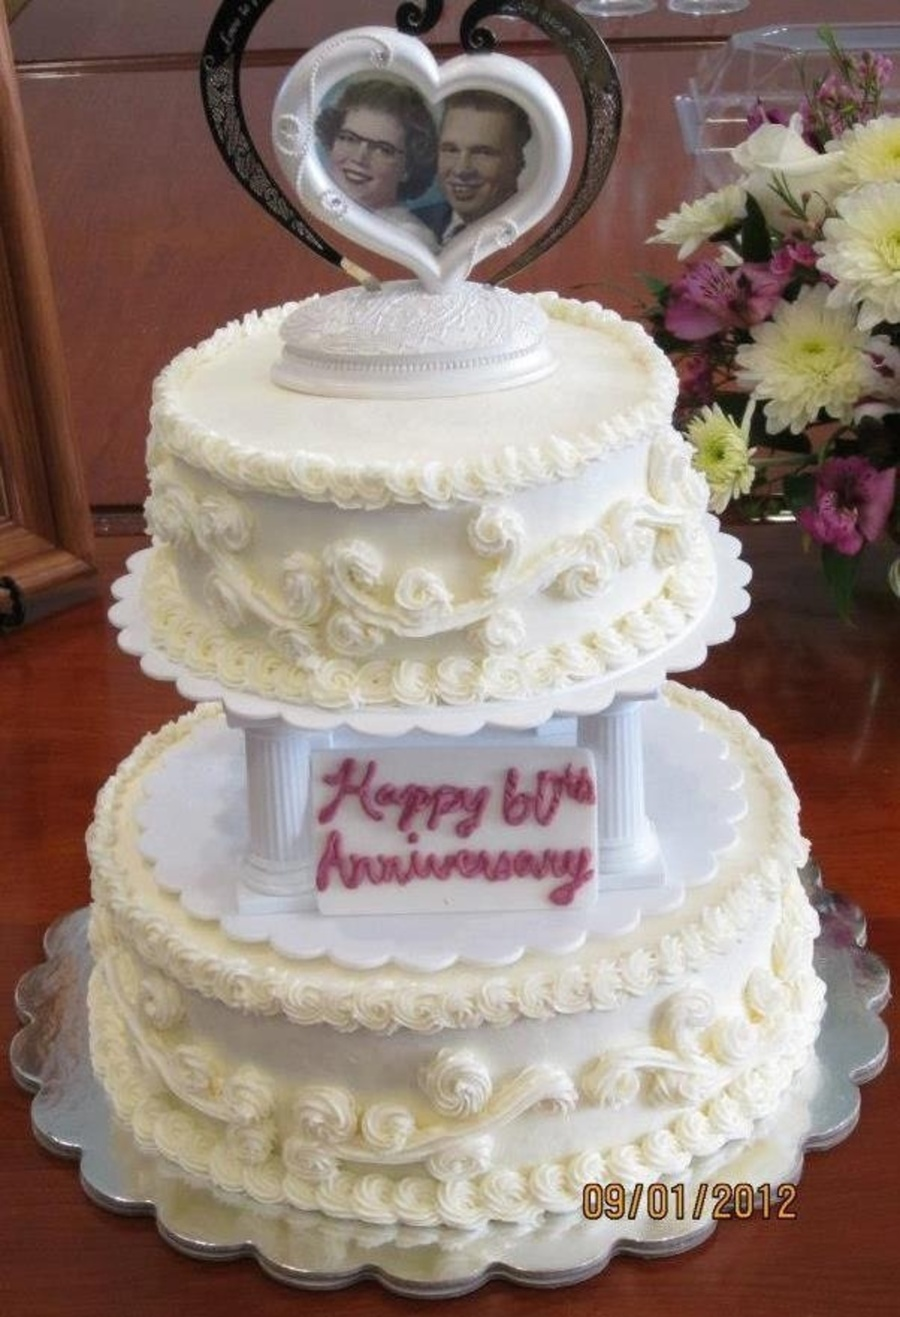 Old Fashioned Buttercream Wedding Cake For A 60Th Anniversary - Old Fashioned Wedding Cake